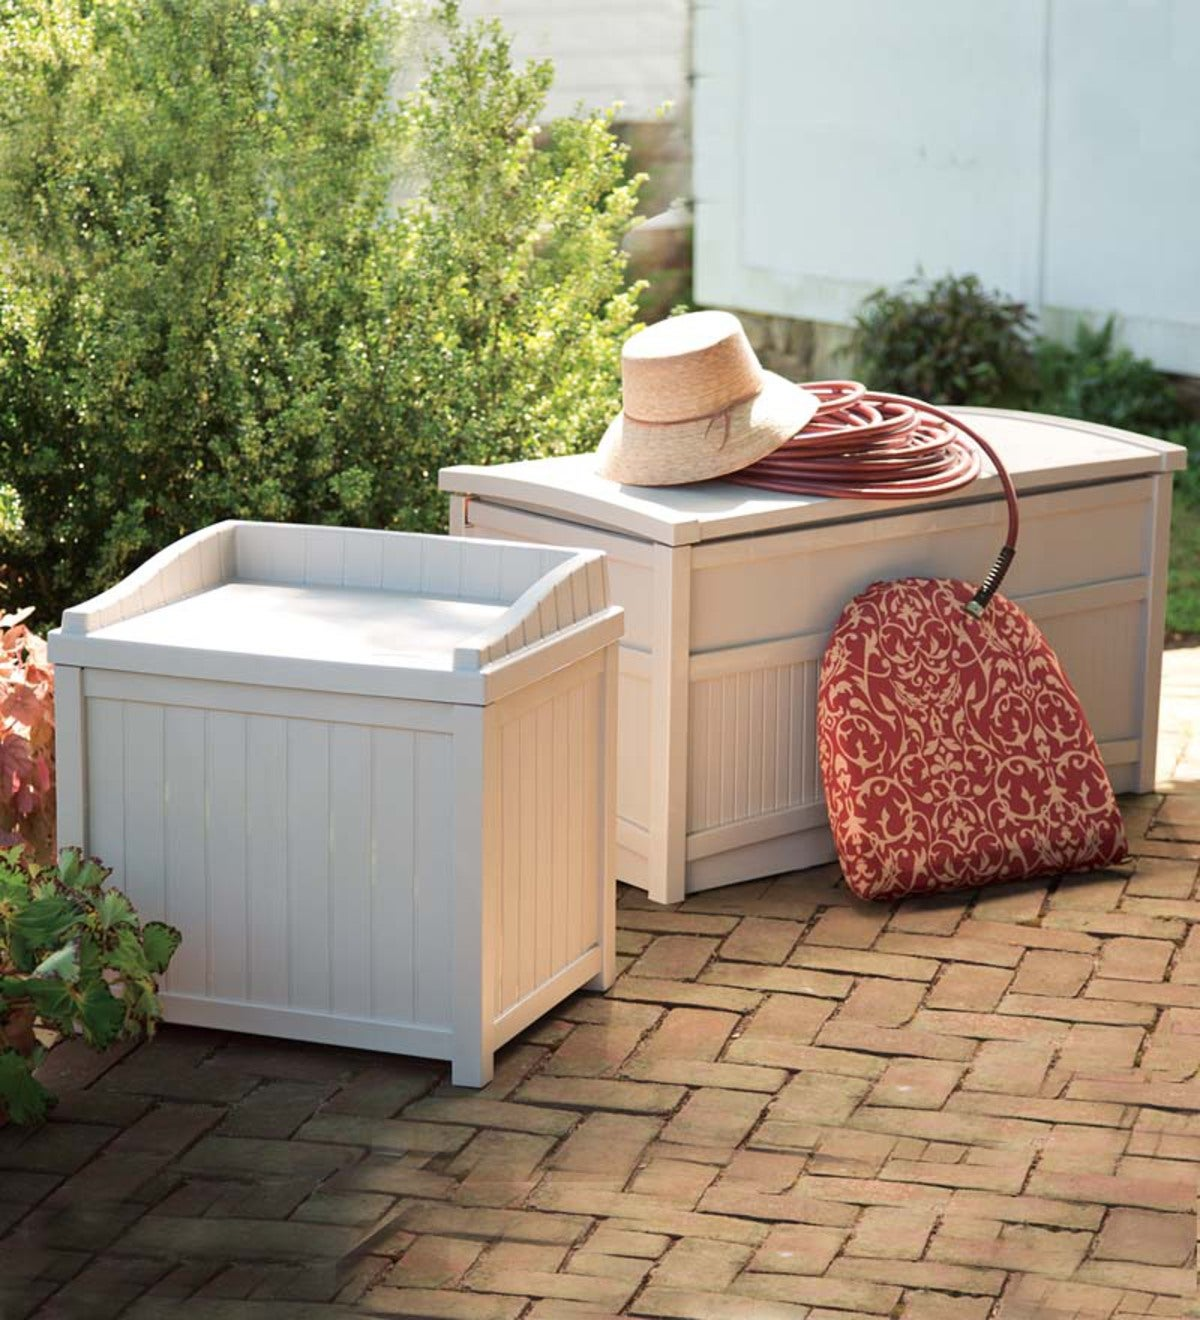 Weather-Resistant Maintenance-Free Resin Storage Boxes With Stay-Dry Lids